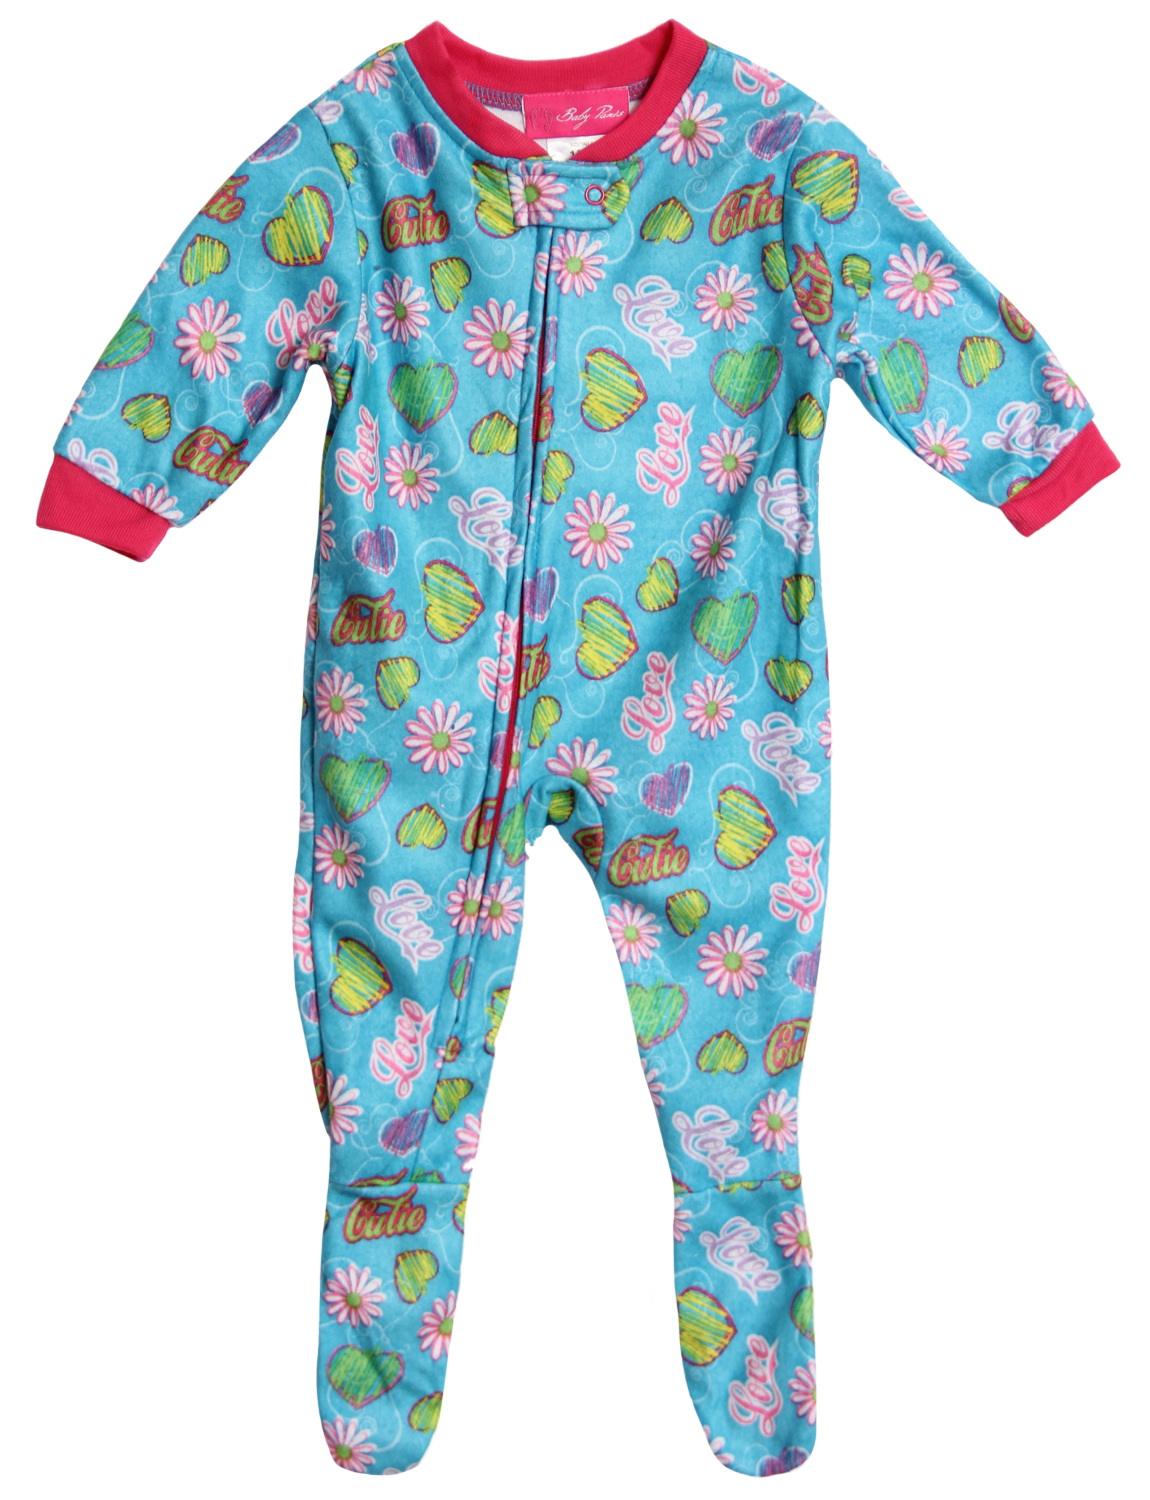 Baby Paris Baby Girls' 1 Piece Blue Footed Sleeper Flannel Pajamas